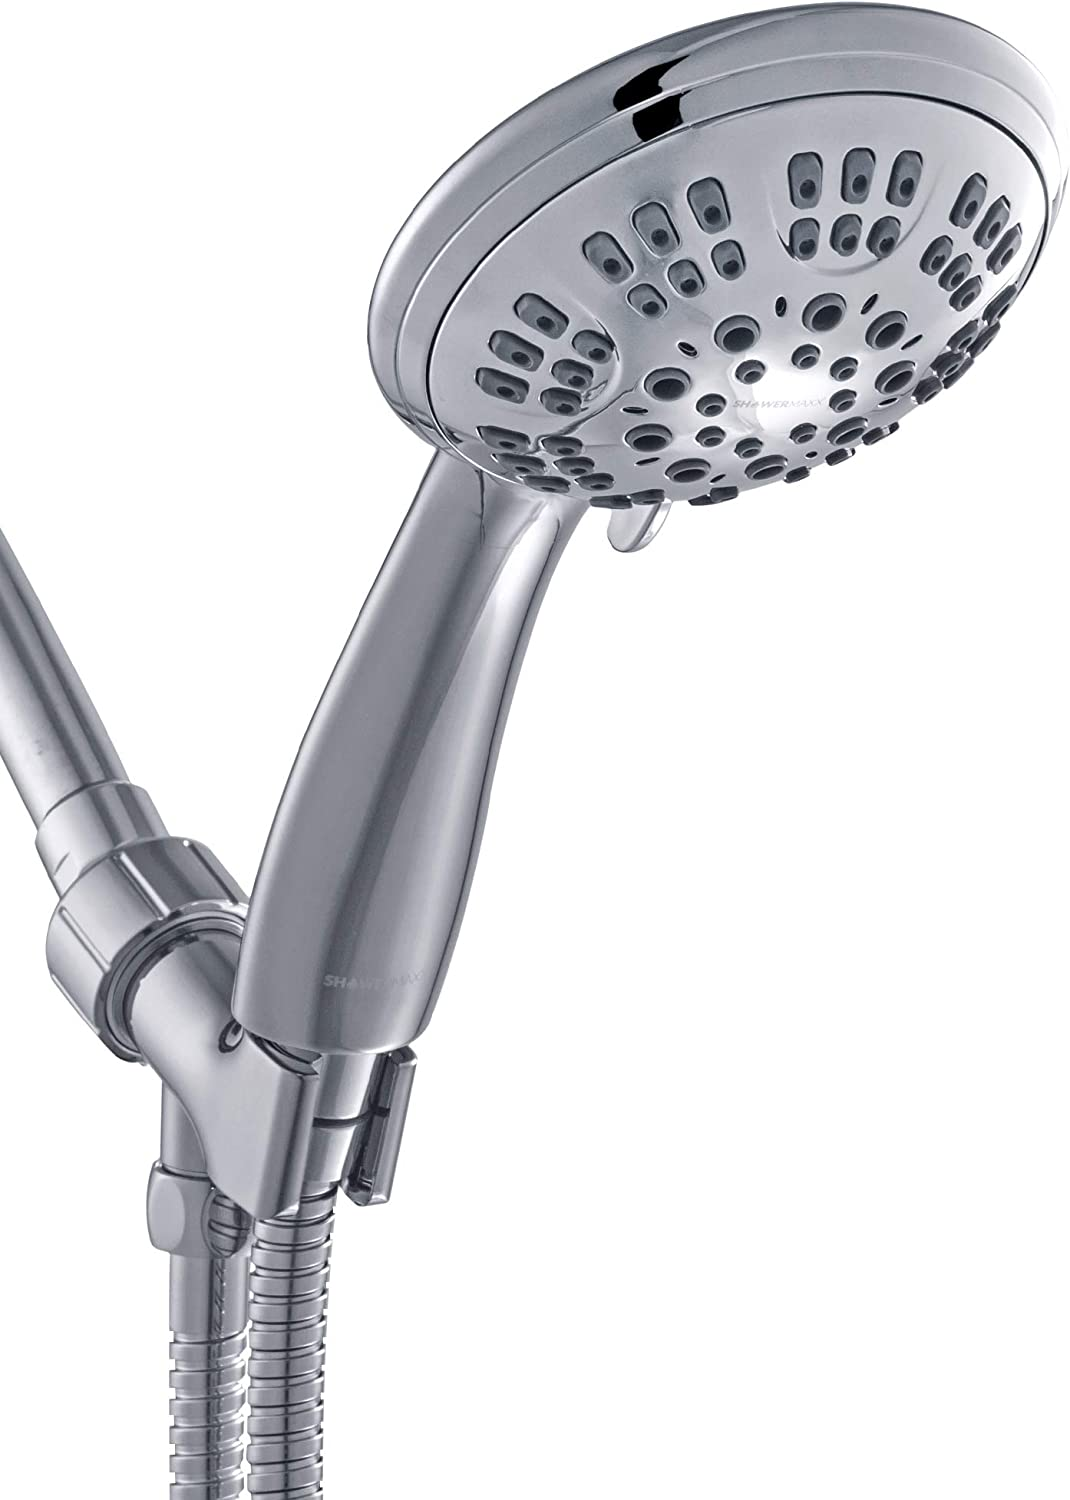 MAXX-imize Your Shower with Easy-to-Remove Flow Restrictor Choice Series Polished Chrome Finish ShowerMaxx 3 Spray Settings 4.4 inch Hand Held Shower Head with Extra Long Stainless Steel Hose